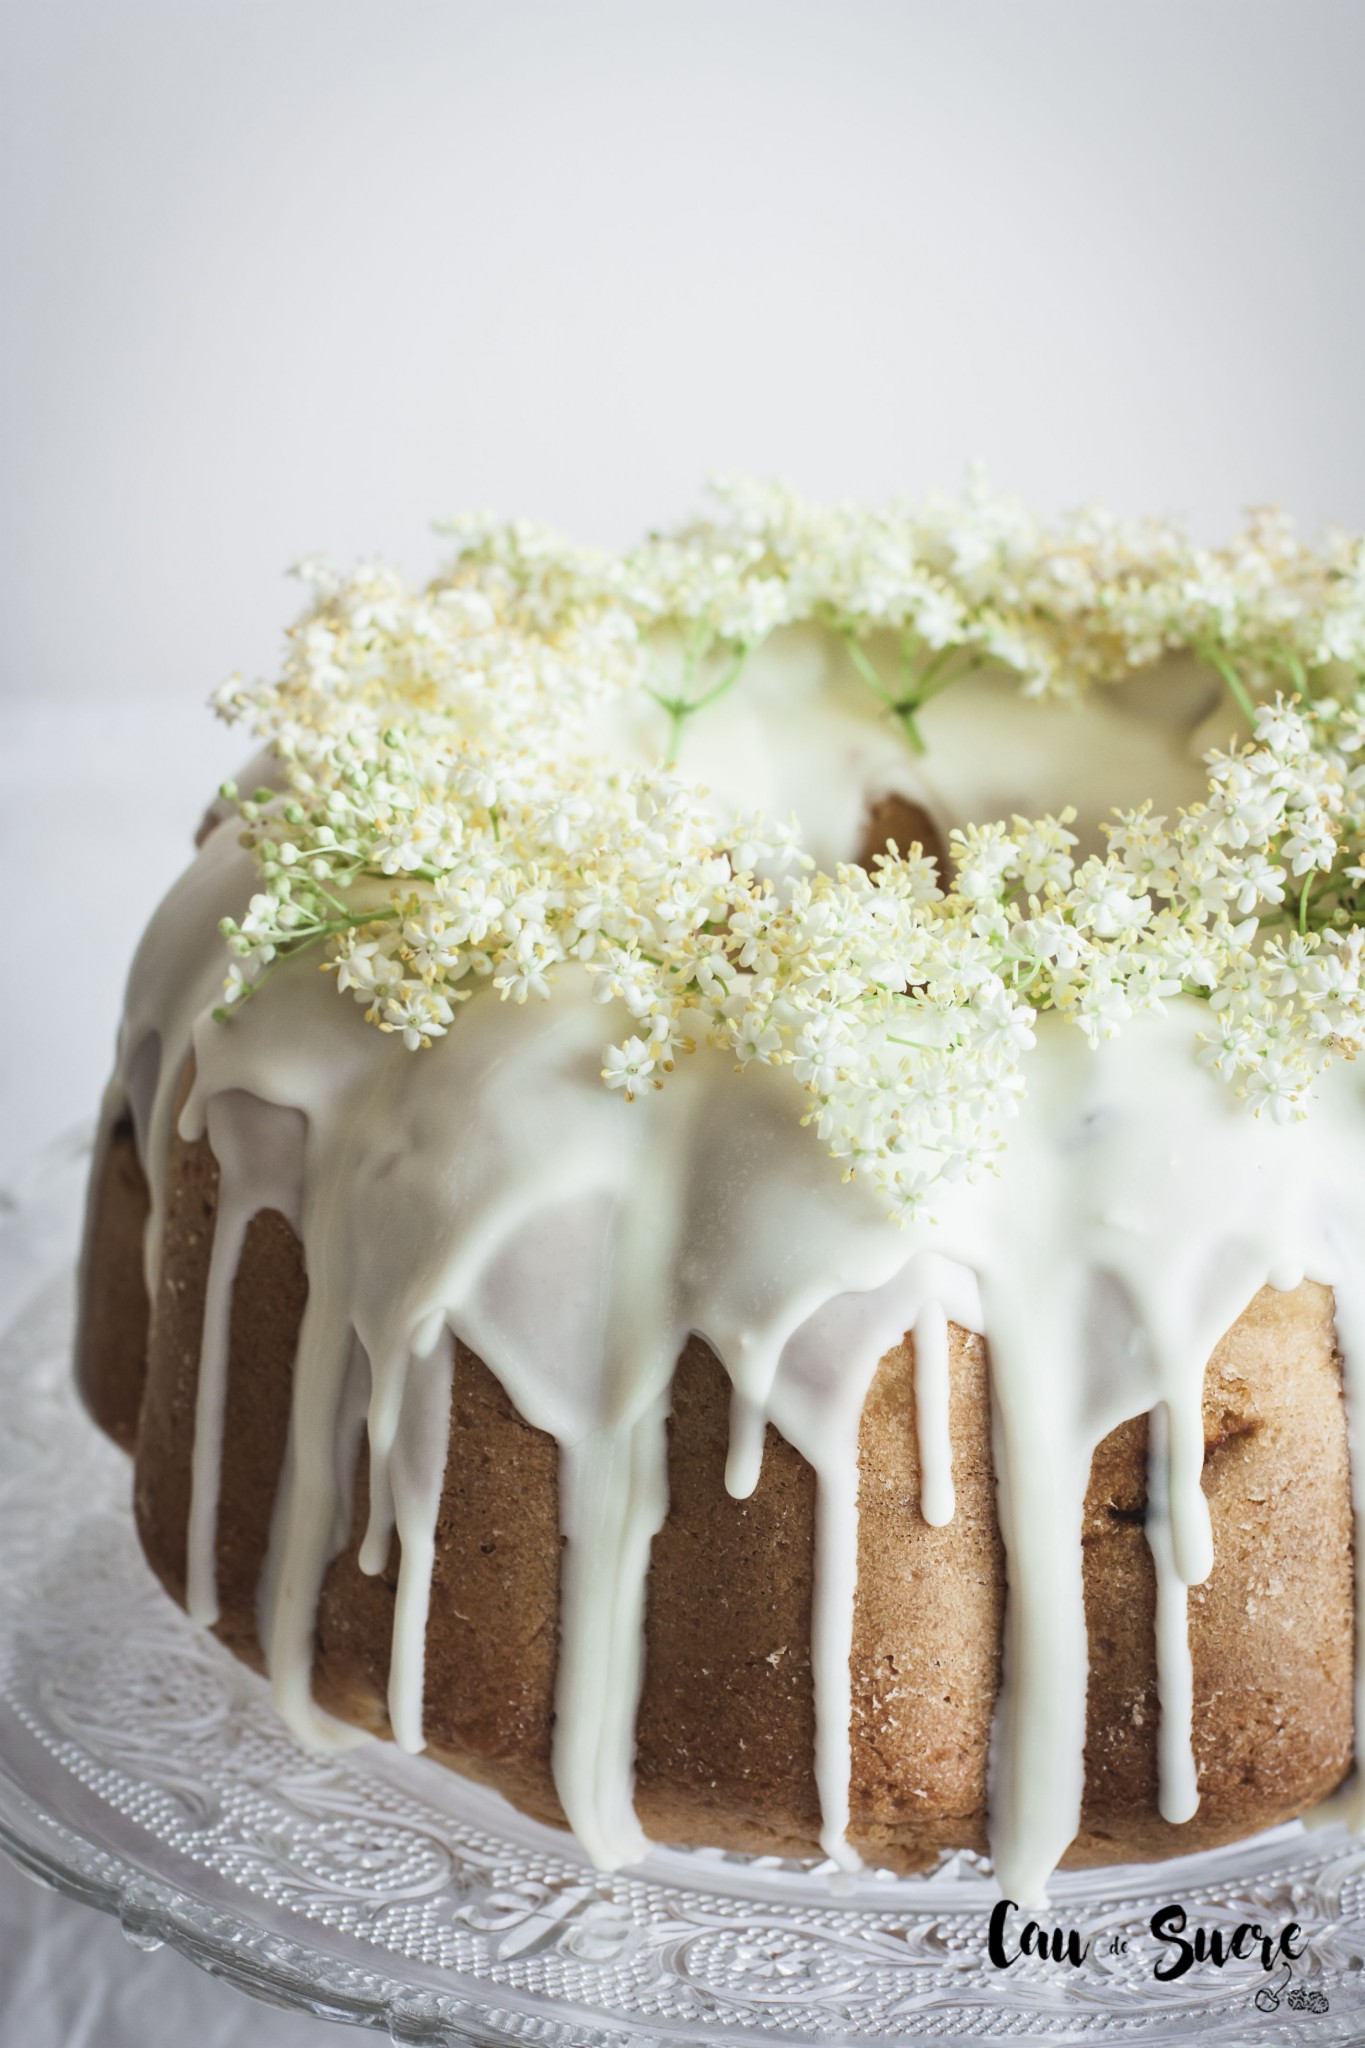 rhubarb_eldelflower_bundtcake-22